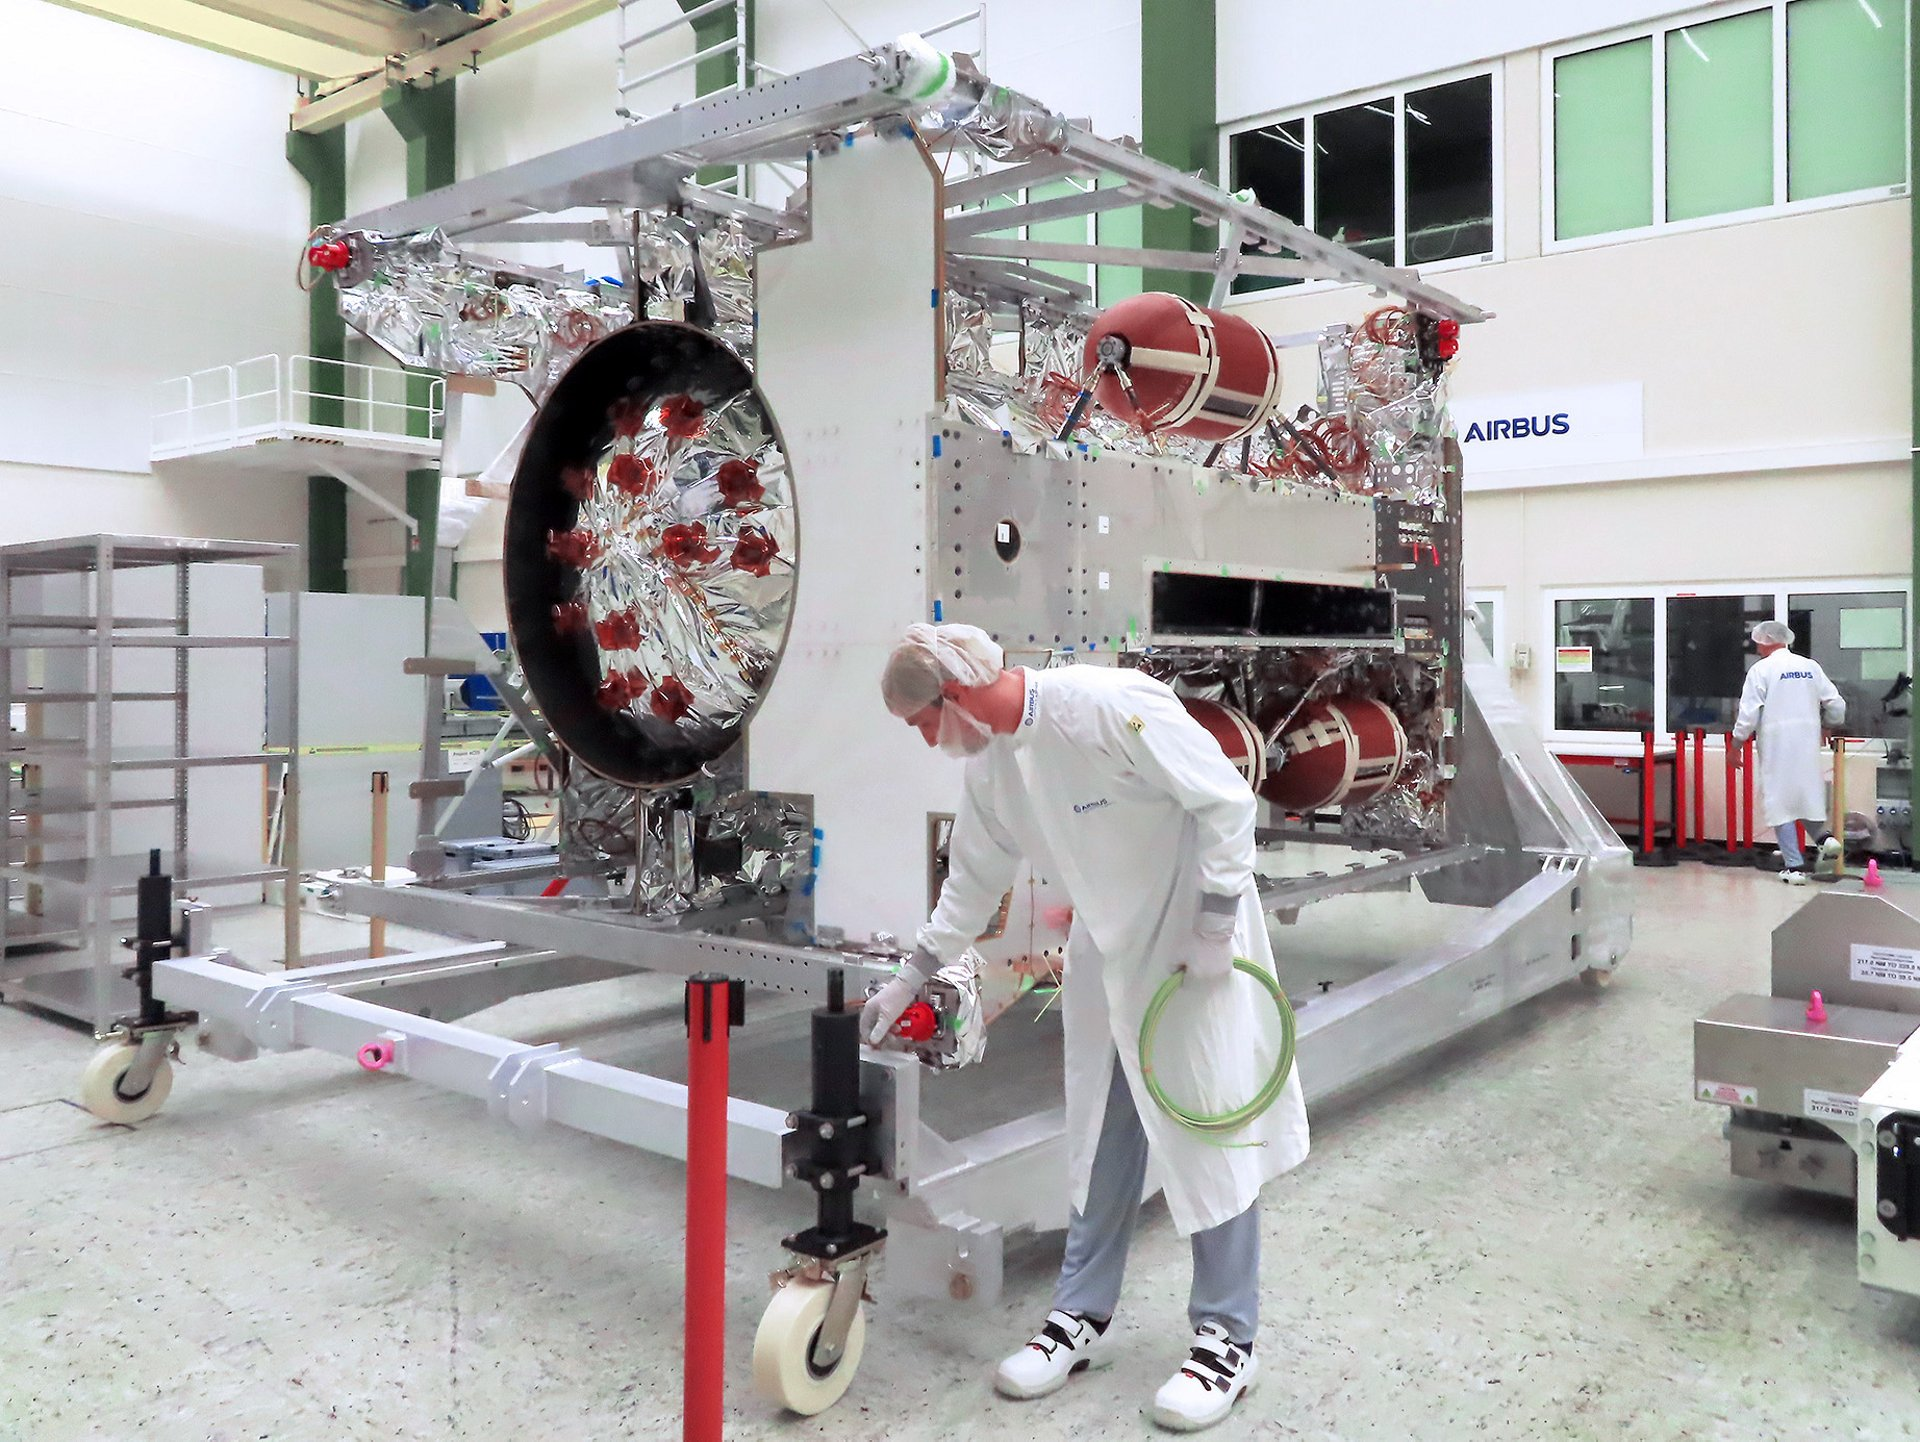 JUICE - JUpiter ICy moons Explorer - is the first large-class mission in ESA's Cosmic Vision 2015-2025 programme. Planned for launch in 2022 and arrival at Jupiter in 2029, it will spend at least three years making detailed observations of the giant gaseous planet Jupiter and three of its largest moons, Ganymede, Callisto and Europa. Airbus is the prime contractor to ESA.